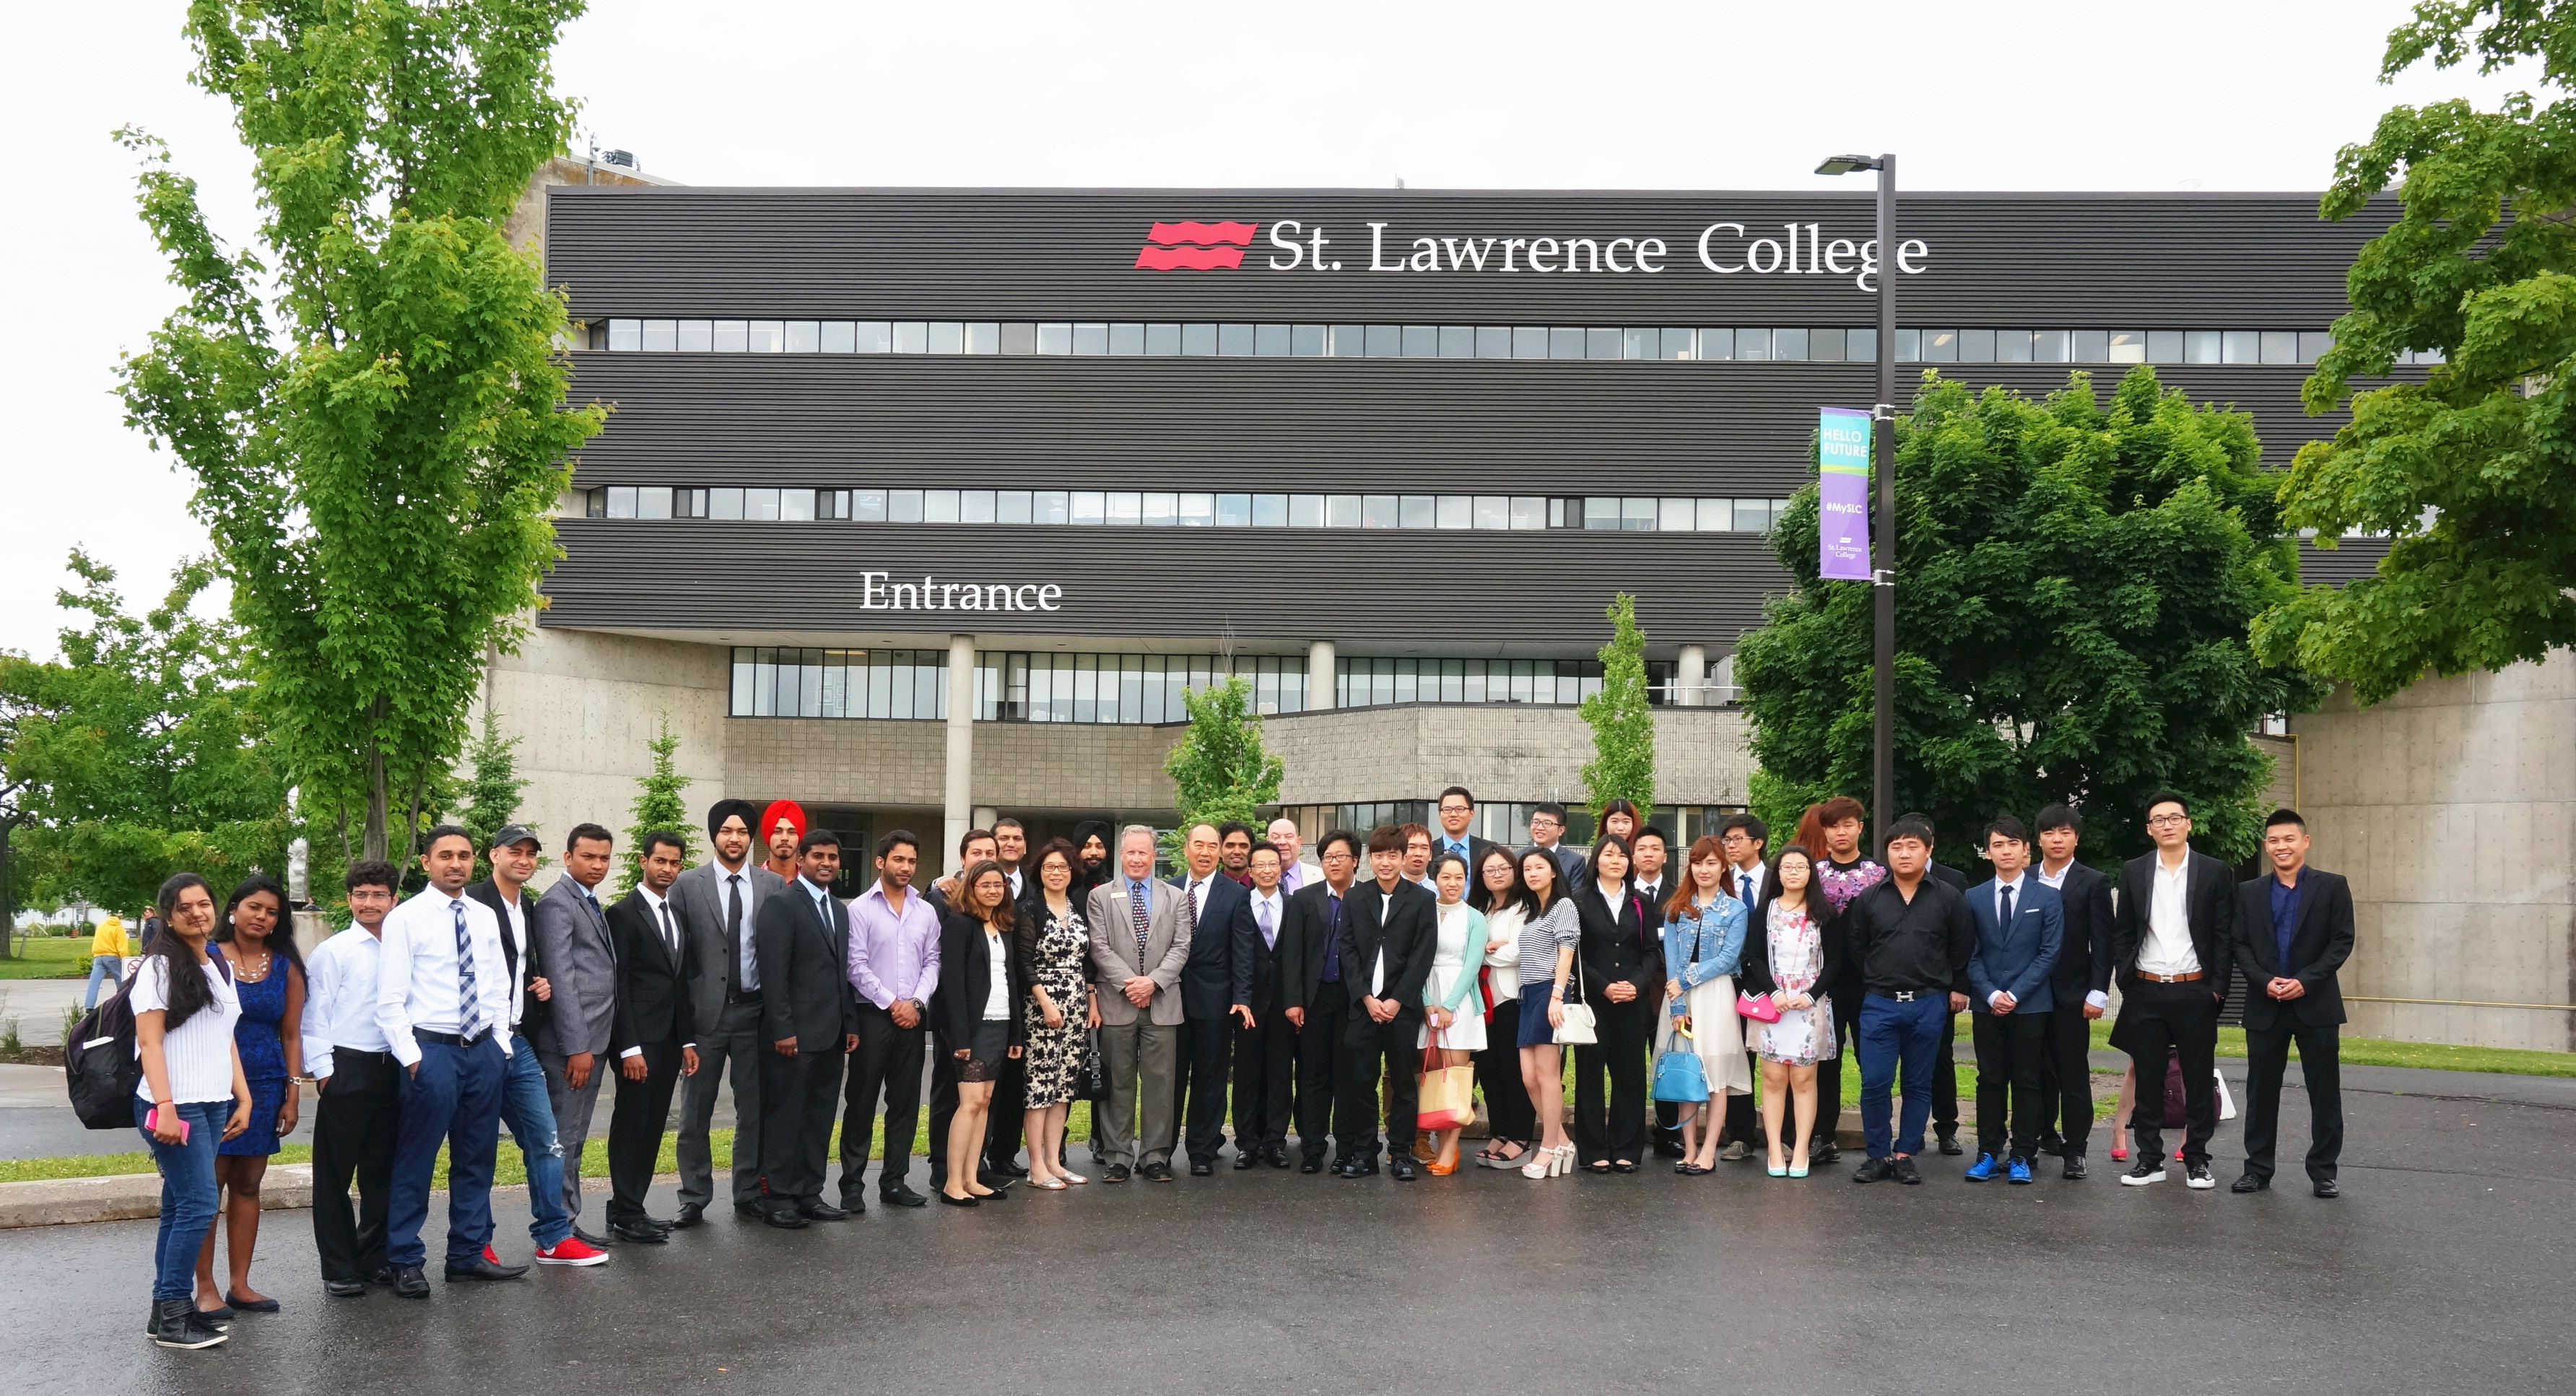 st-laurence-college-students